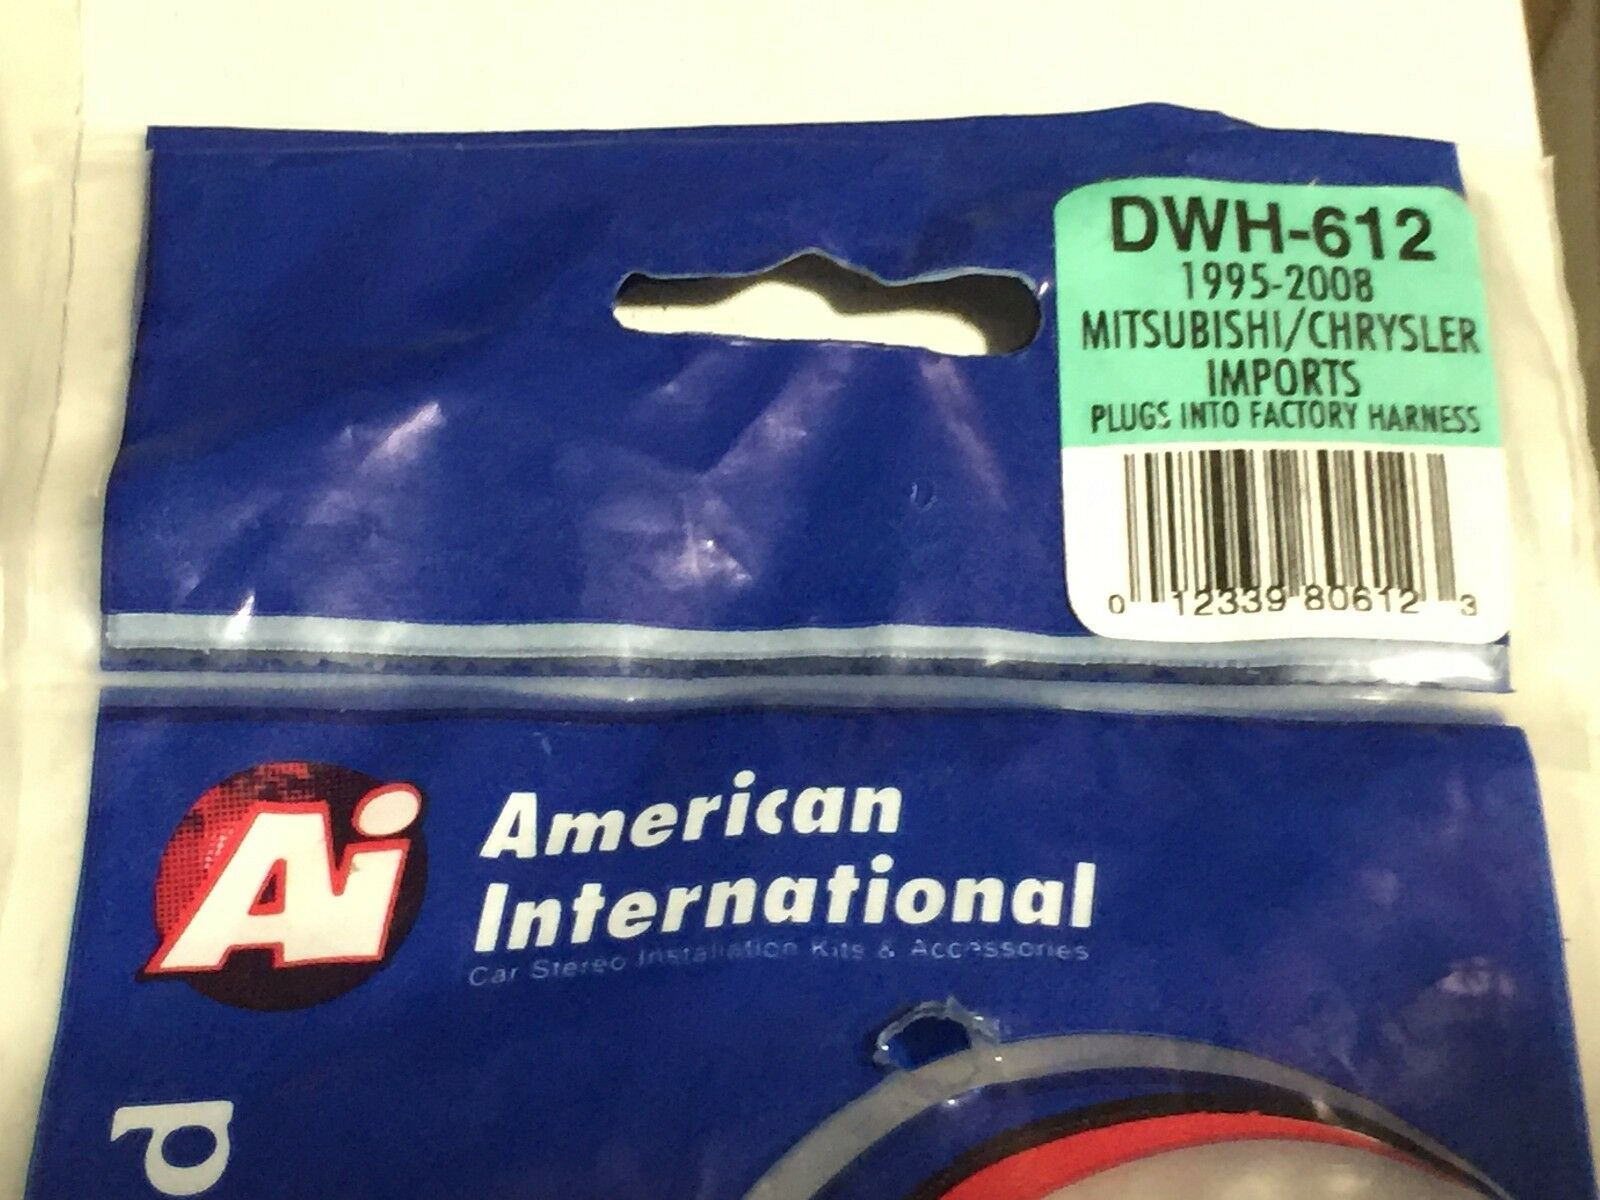 Dodge Mitsubishi Wiring Harness Adapter Plug For Aftermarket American International Like Us On Facebook Radio Dwh612 Ai 1 Of 4free Shipping